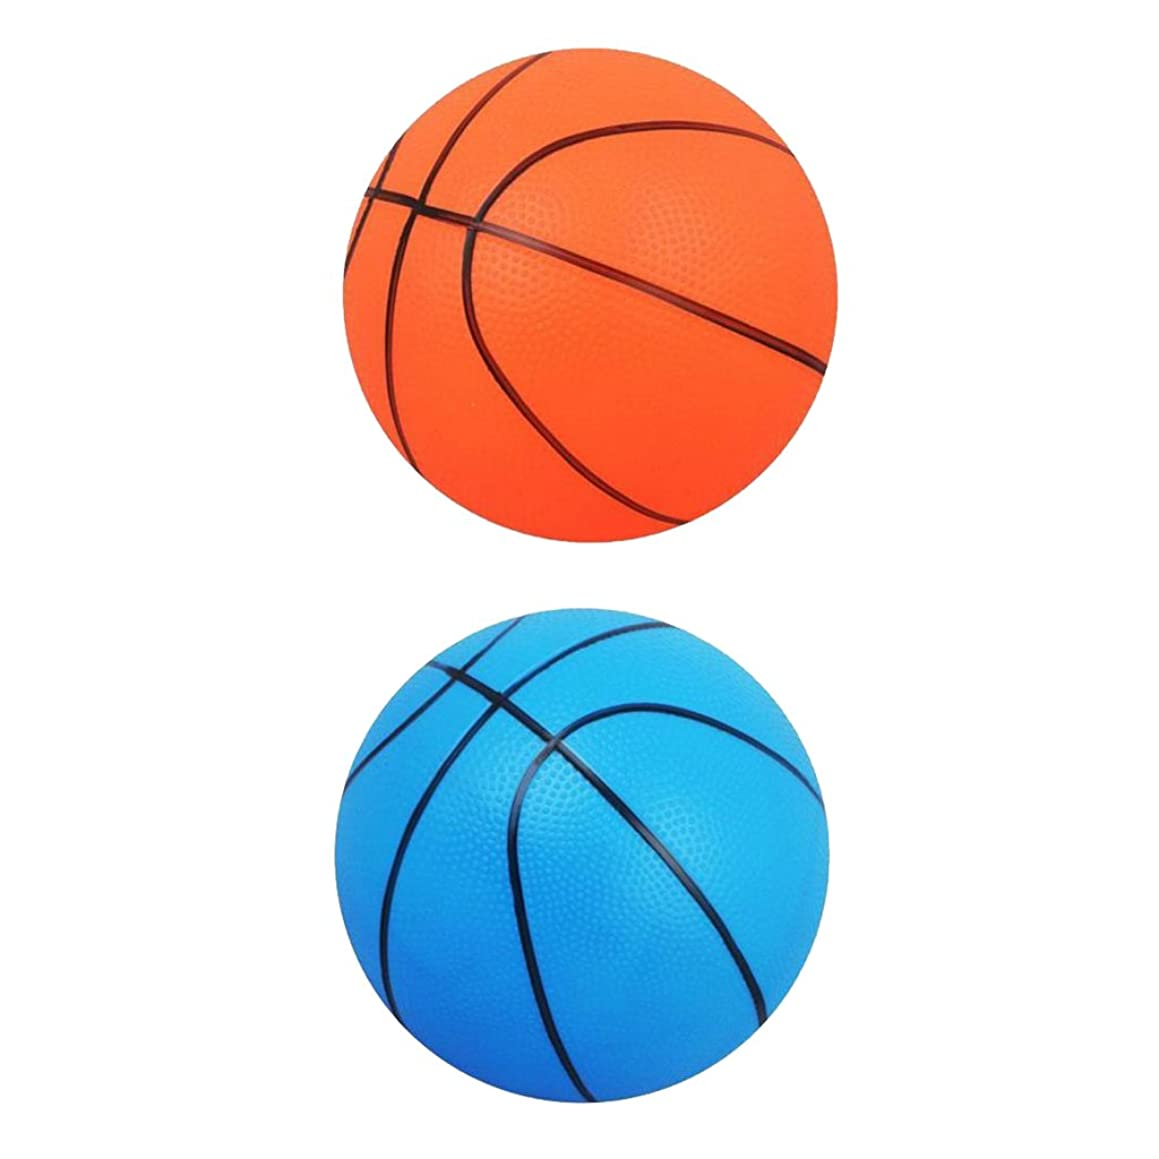 Baoblaze 2pcs Kids Toy Gift Mini Basketball Pet Dog Toy Ball Team Ball Game Sports